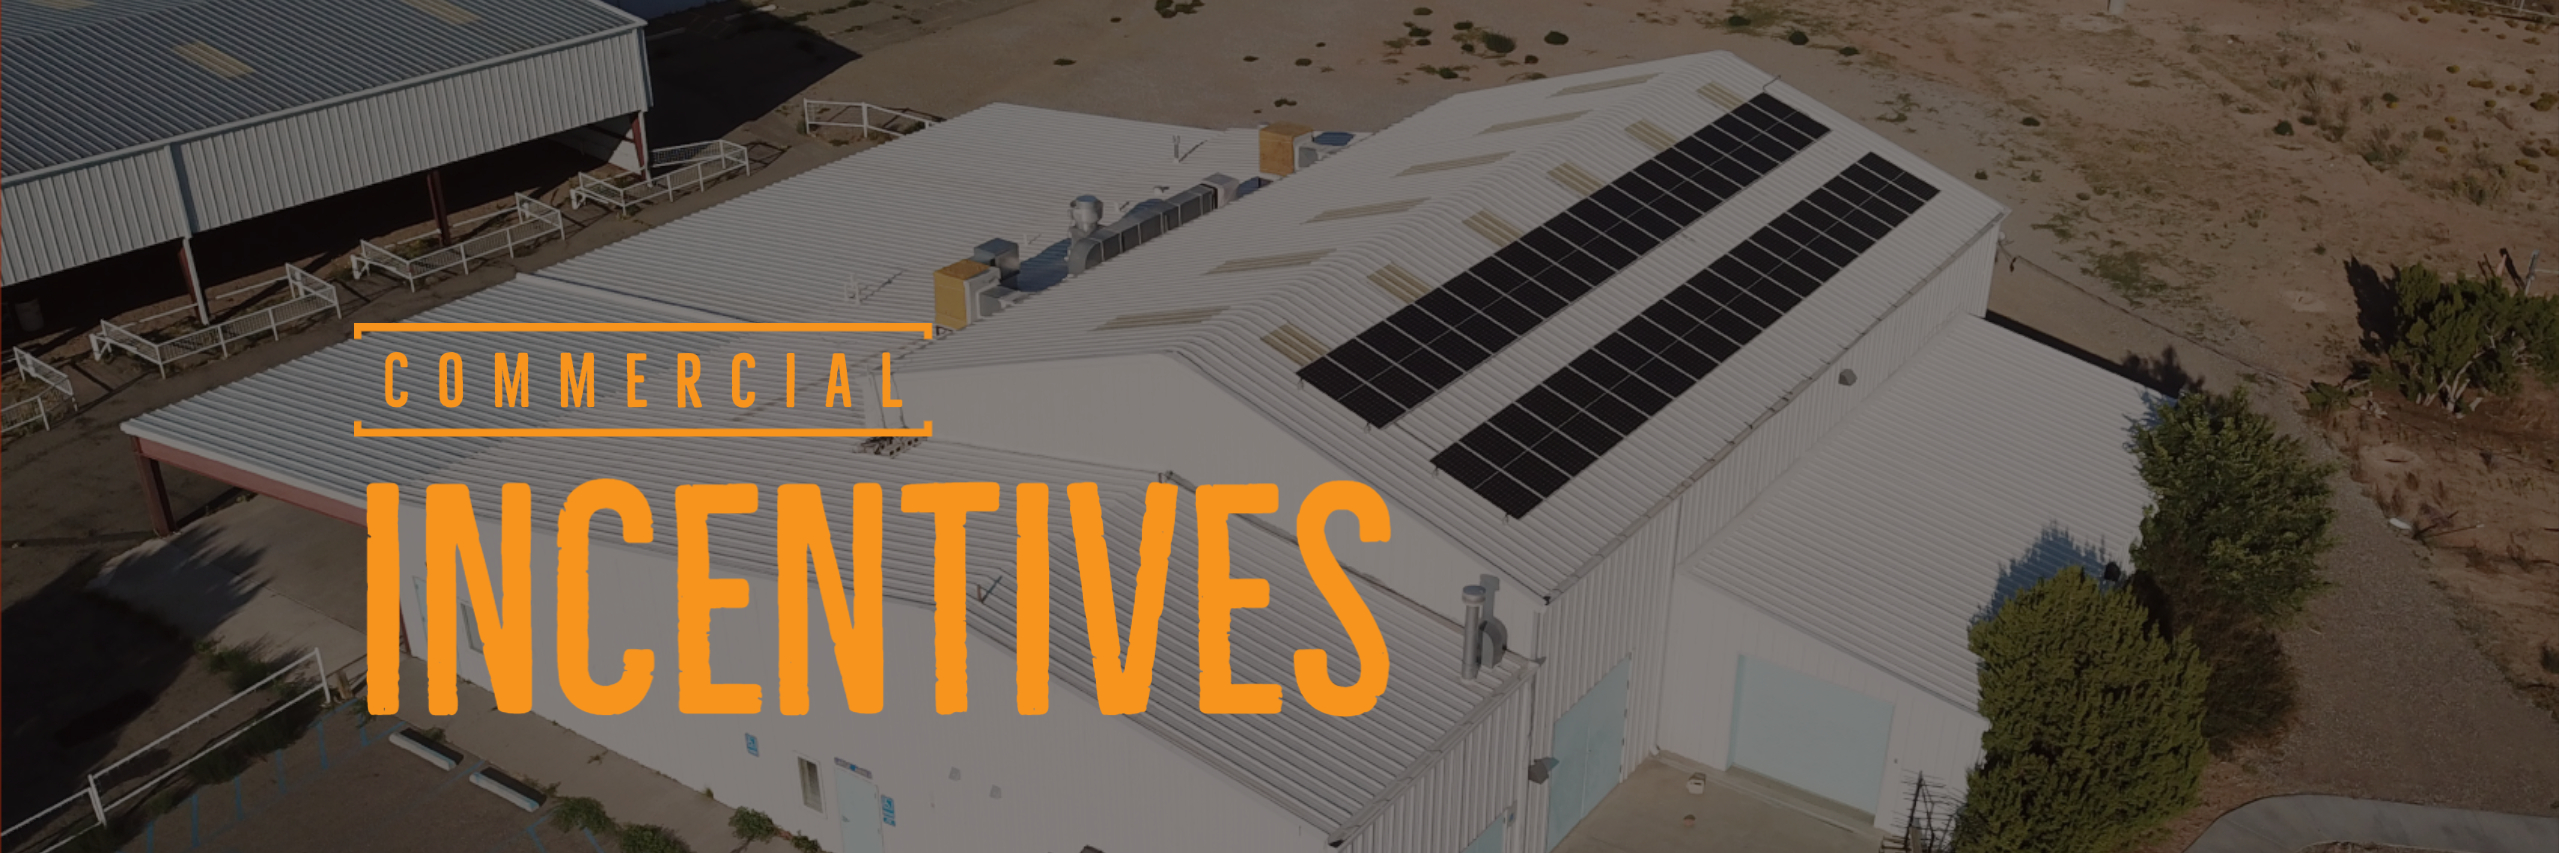 commercial incentives, new mexico solar energy company